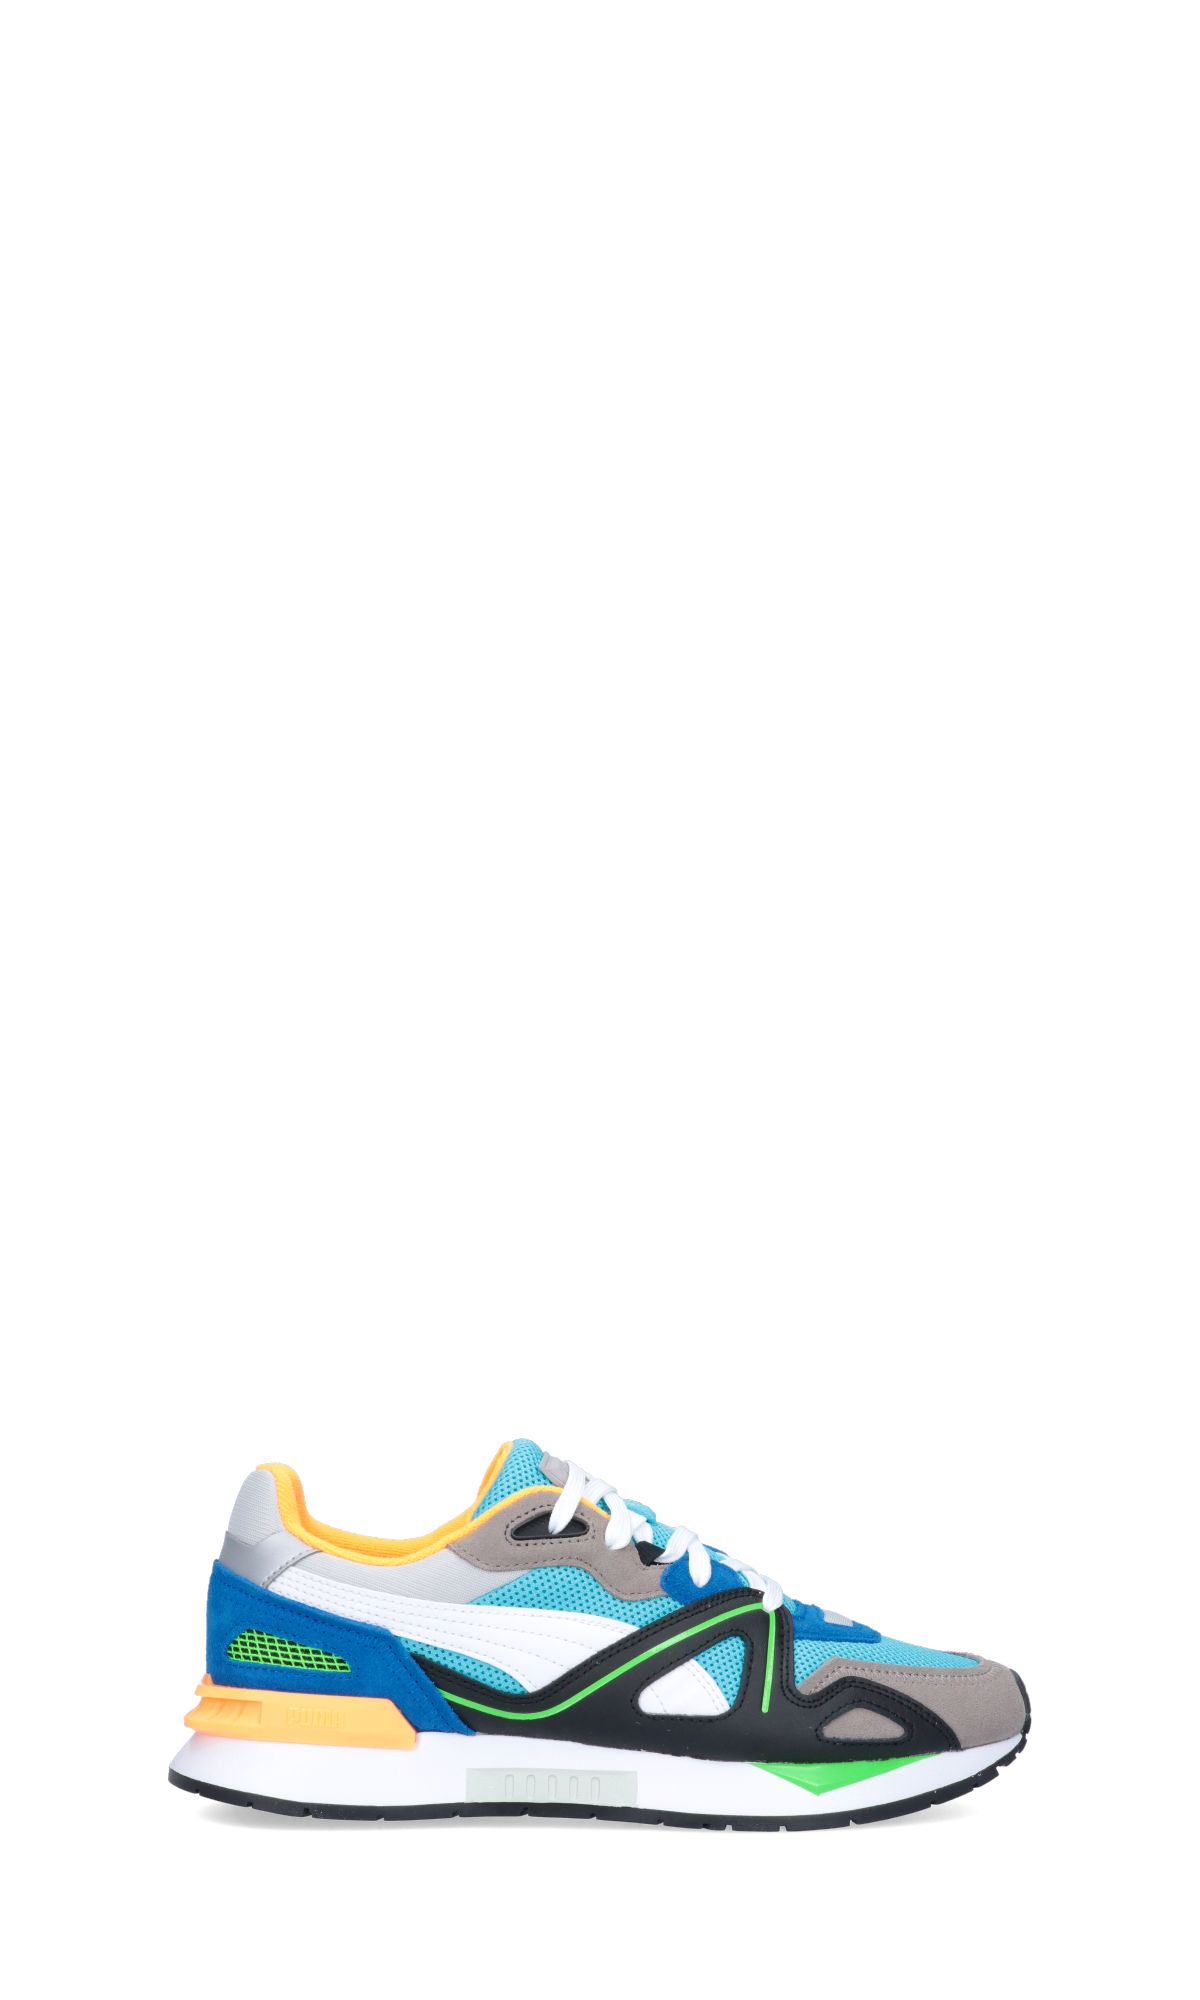 Puma PUMA MEN'S MULTICOLOR SUEDE SNEAKERS